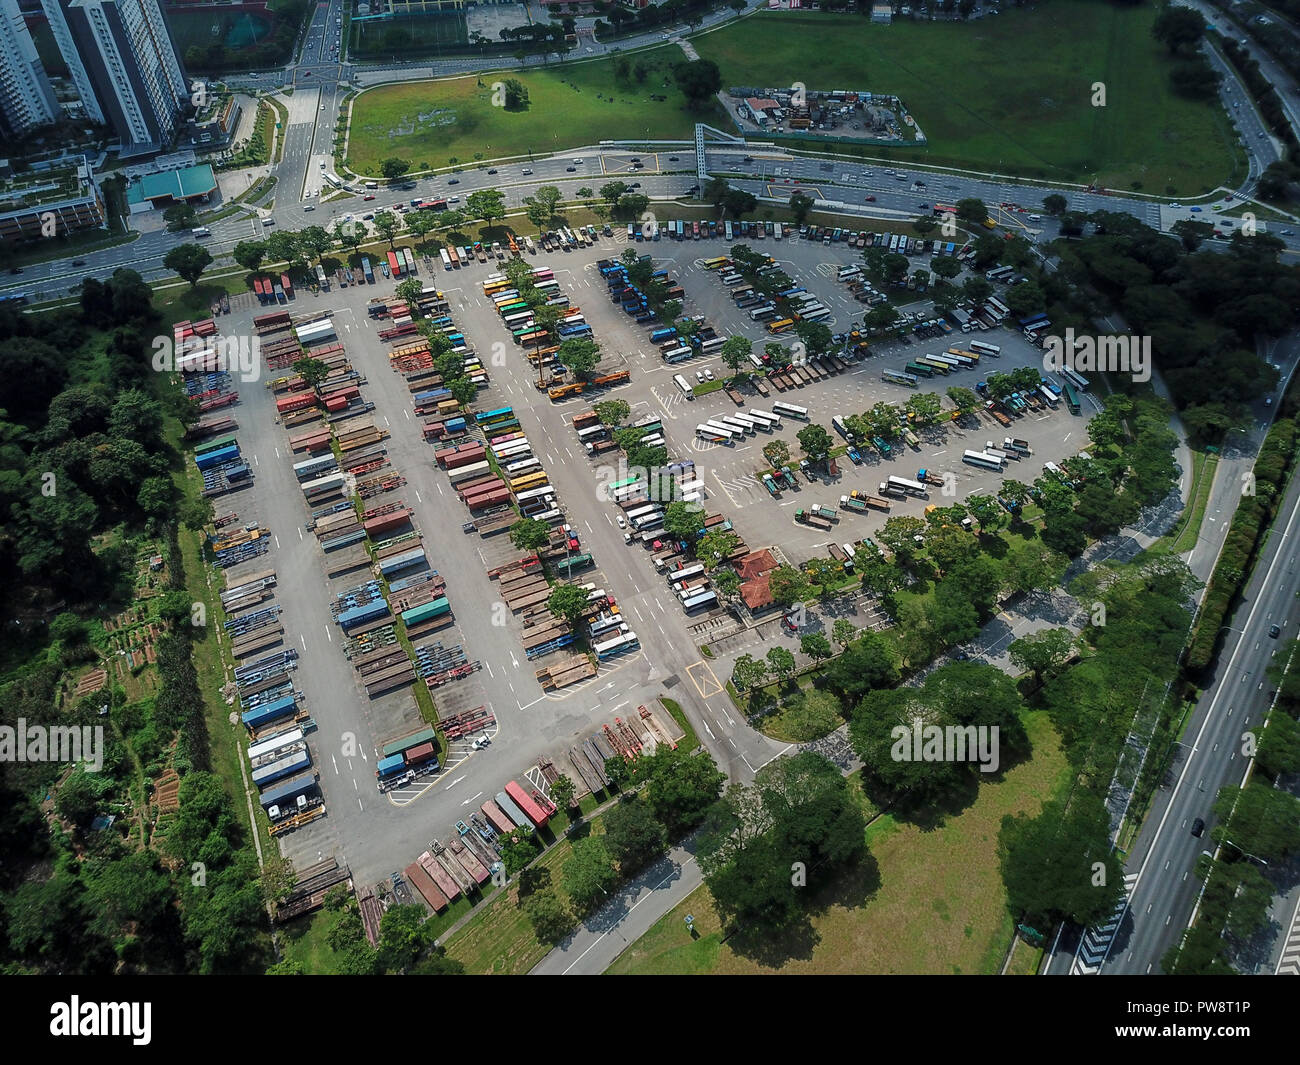 Aerial imagery of a heavy vehicle parking site in Bulim, Singapore - Stock Image